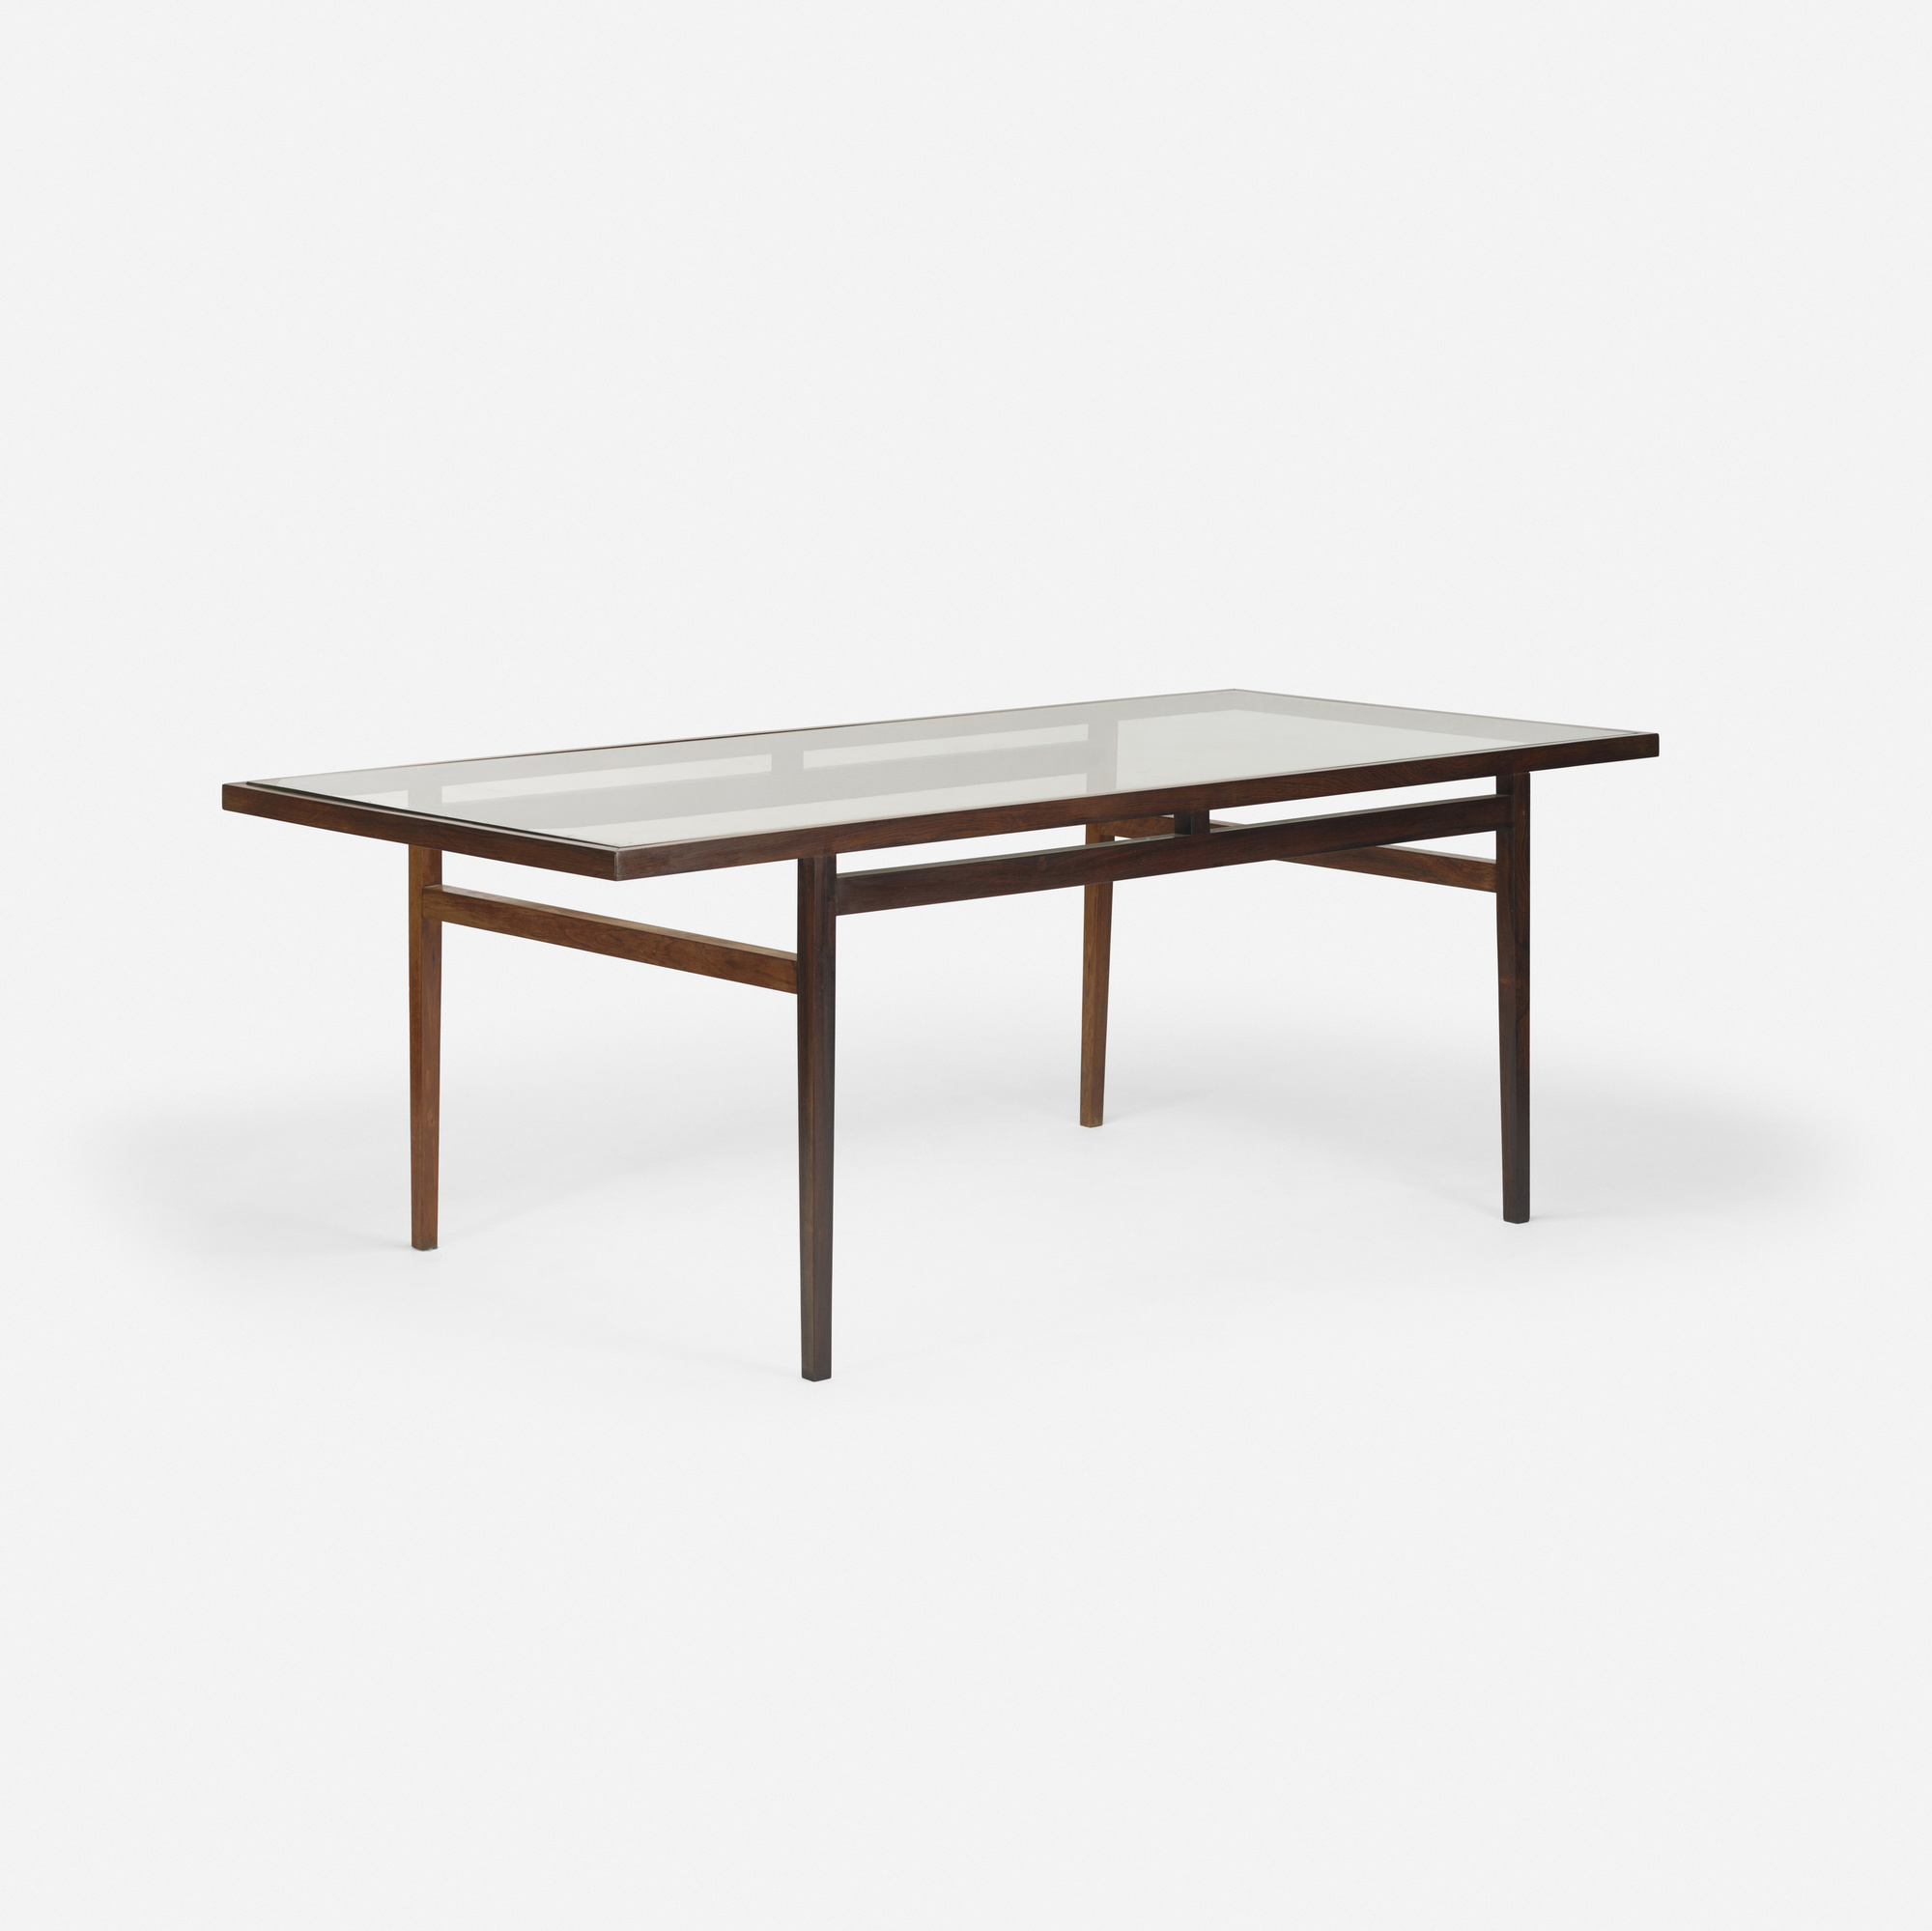 174: Branco & Preto / dining table (2 of 3)